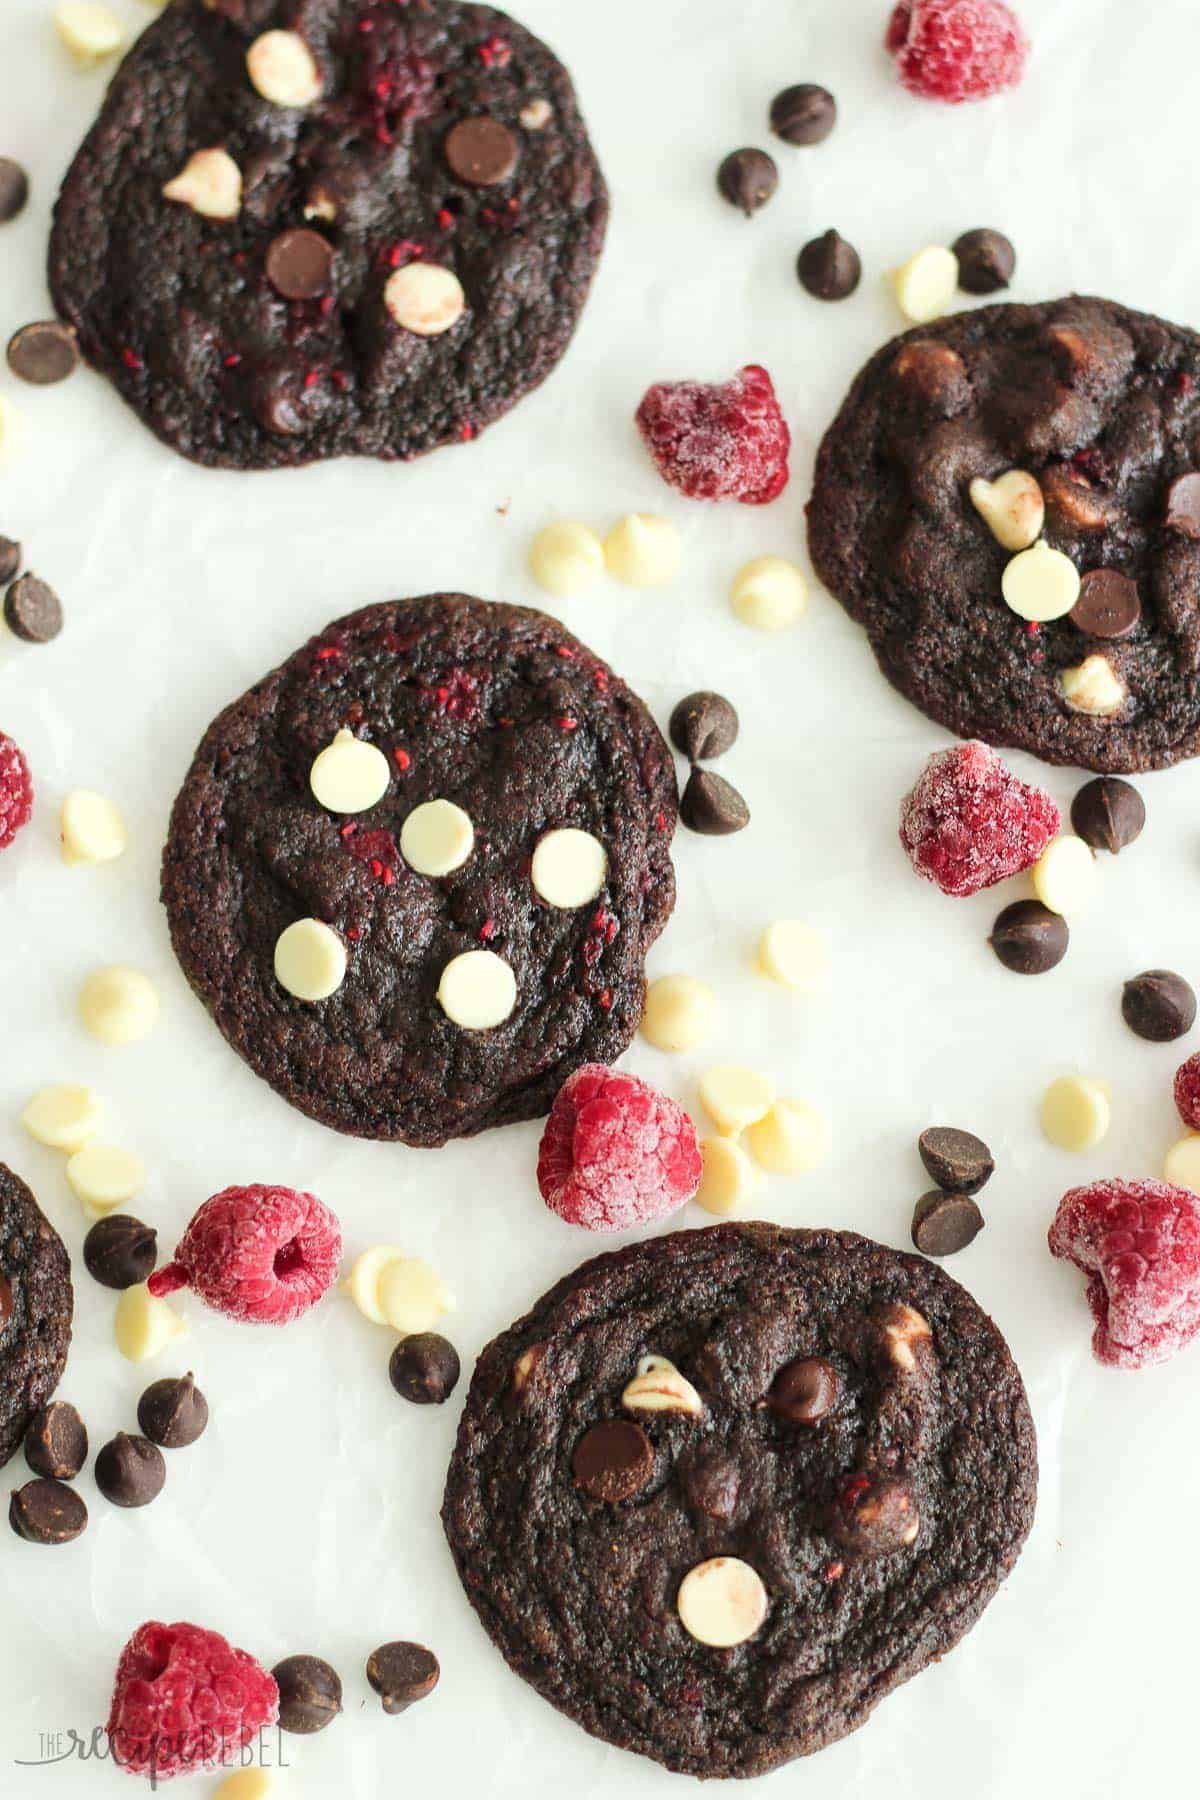 Triple Chocolate Raspberry Cookies are the BEST cookies I've ever eaten! The perfect combination of fruit and chocolate.